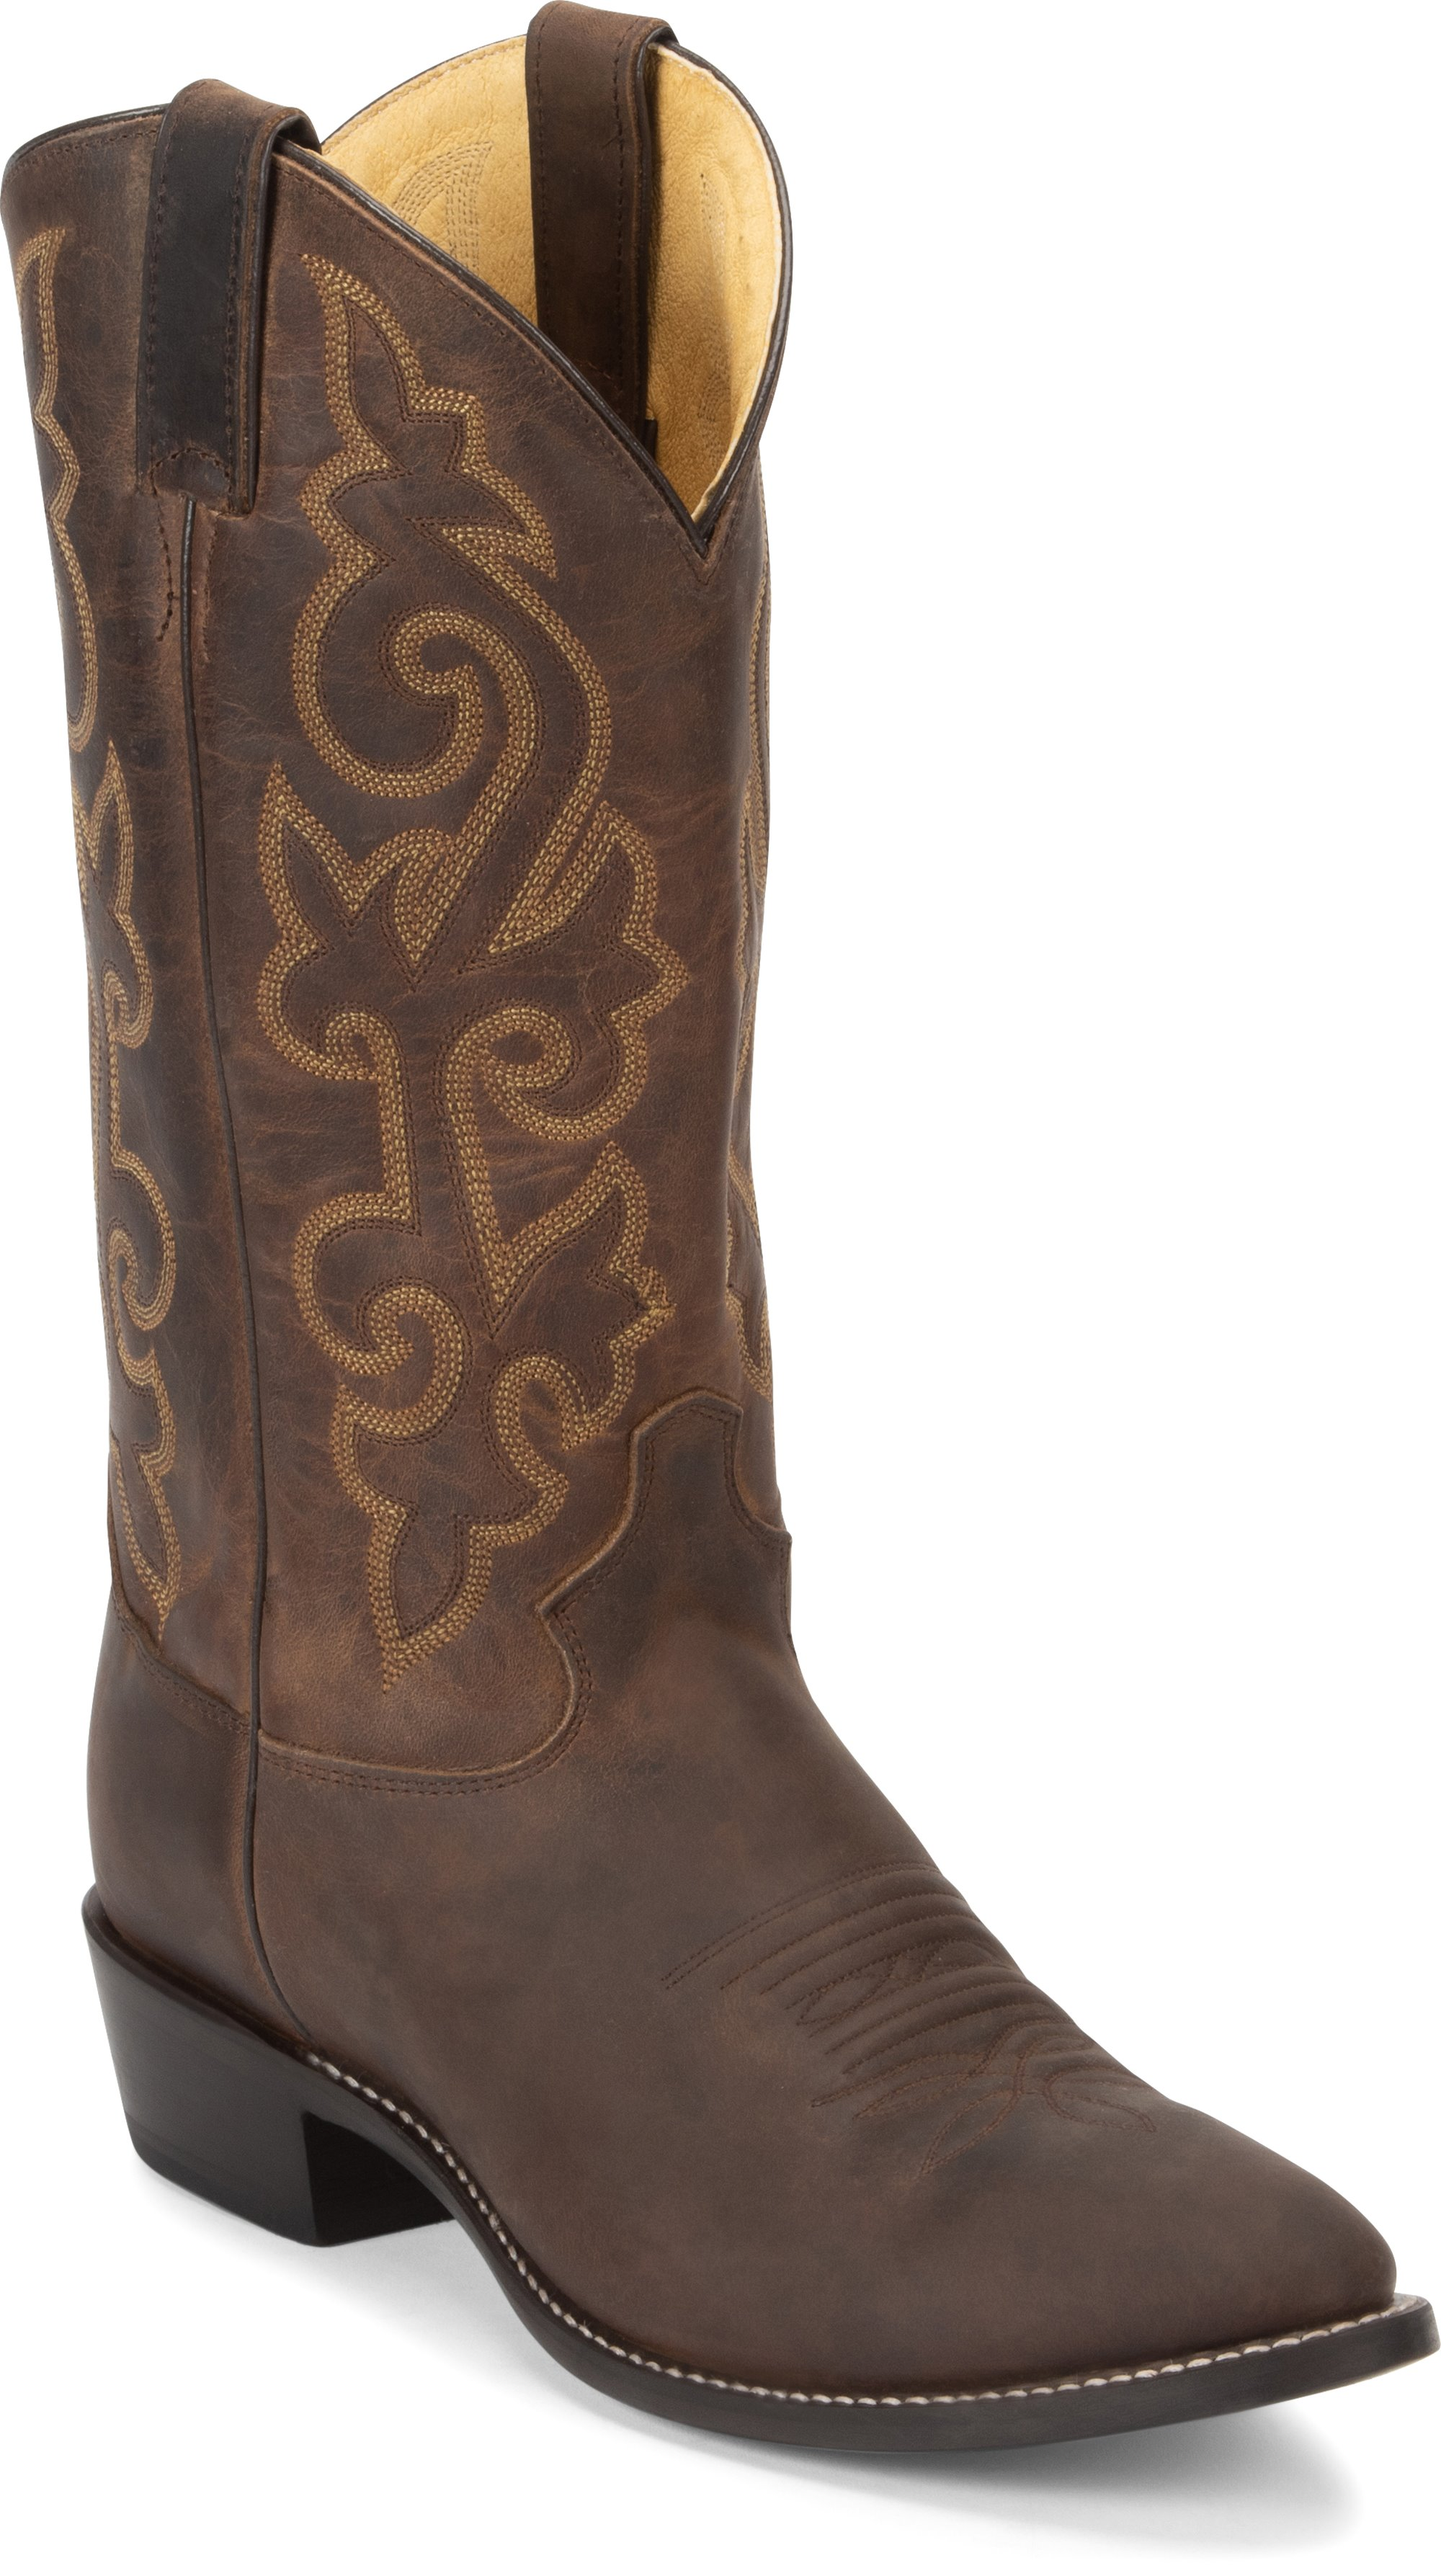 37efcc29024 JUSTIN BOOTS #2253 BUCK BAY APACHE